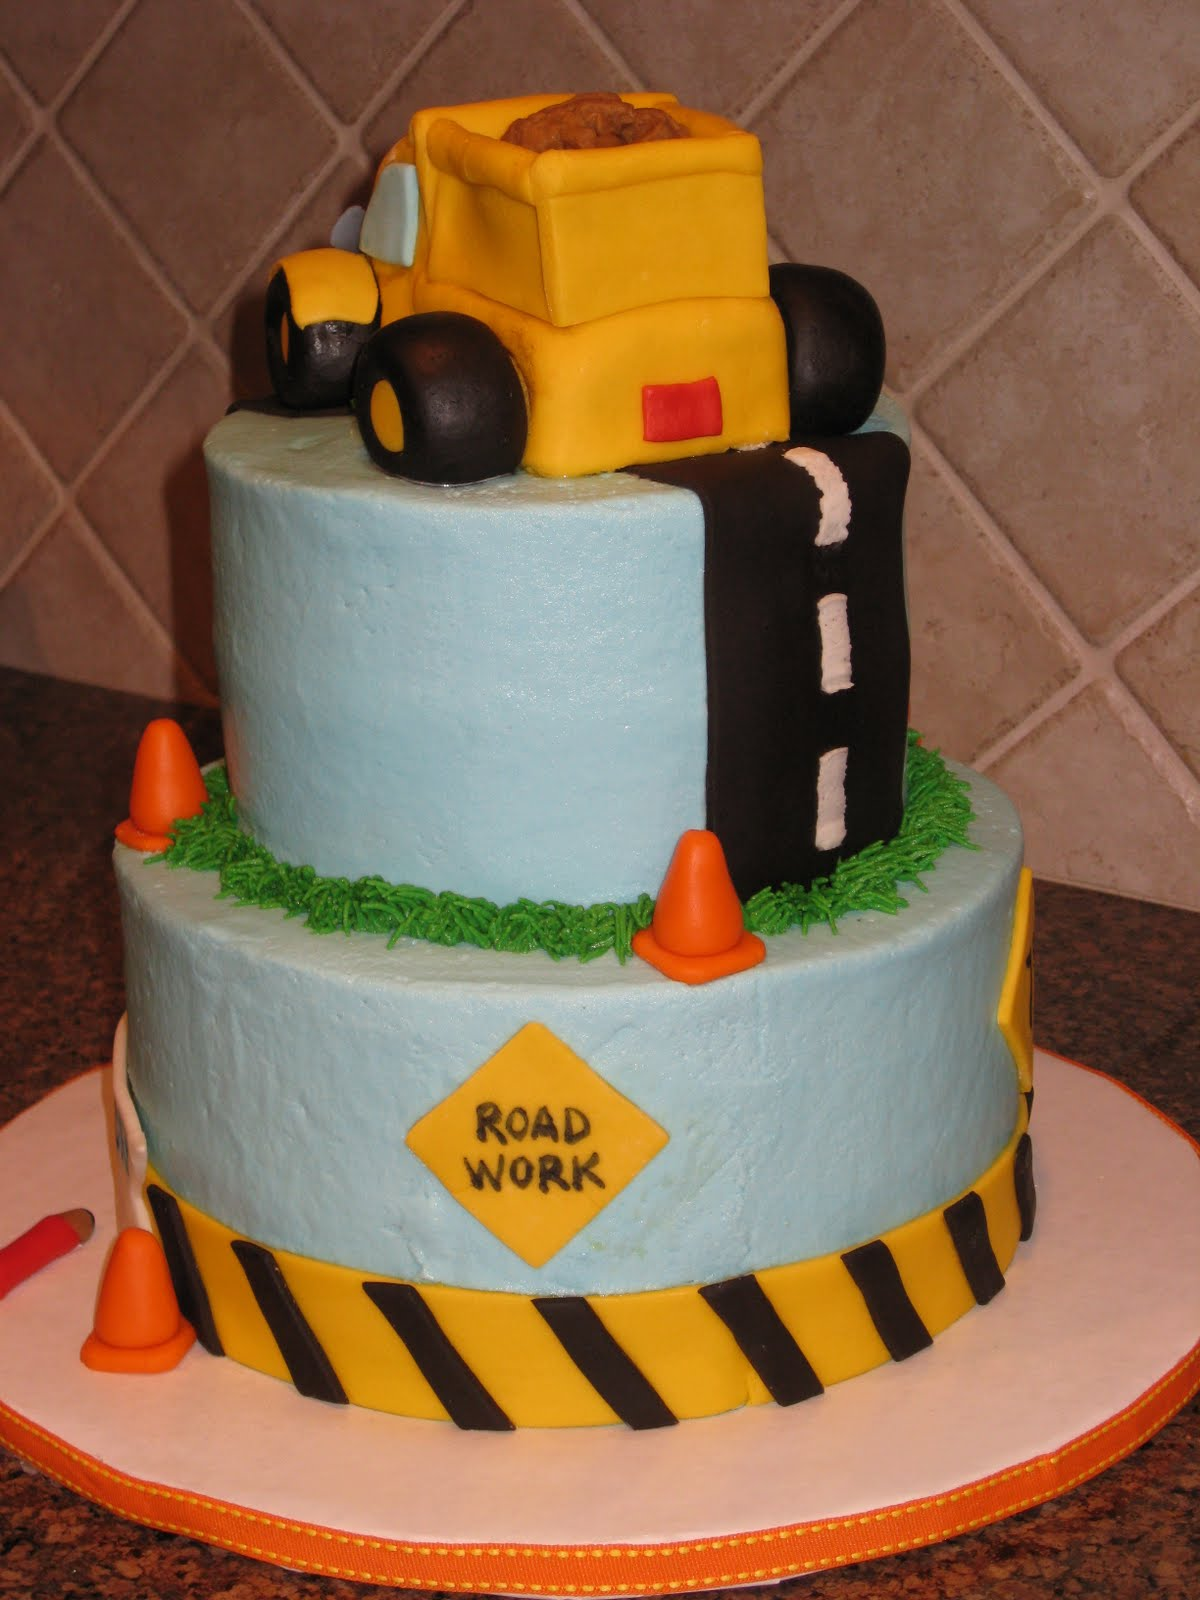 shannon u0026 39 s creative cakes  construction pals first birthday